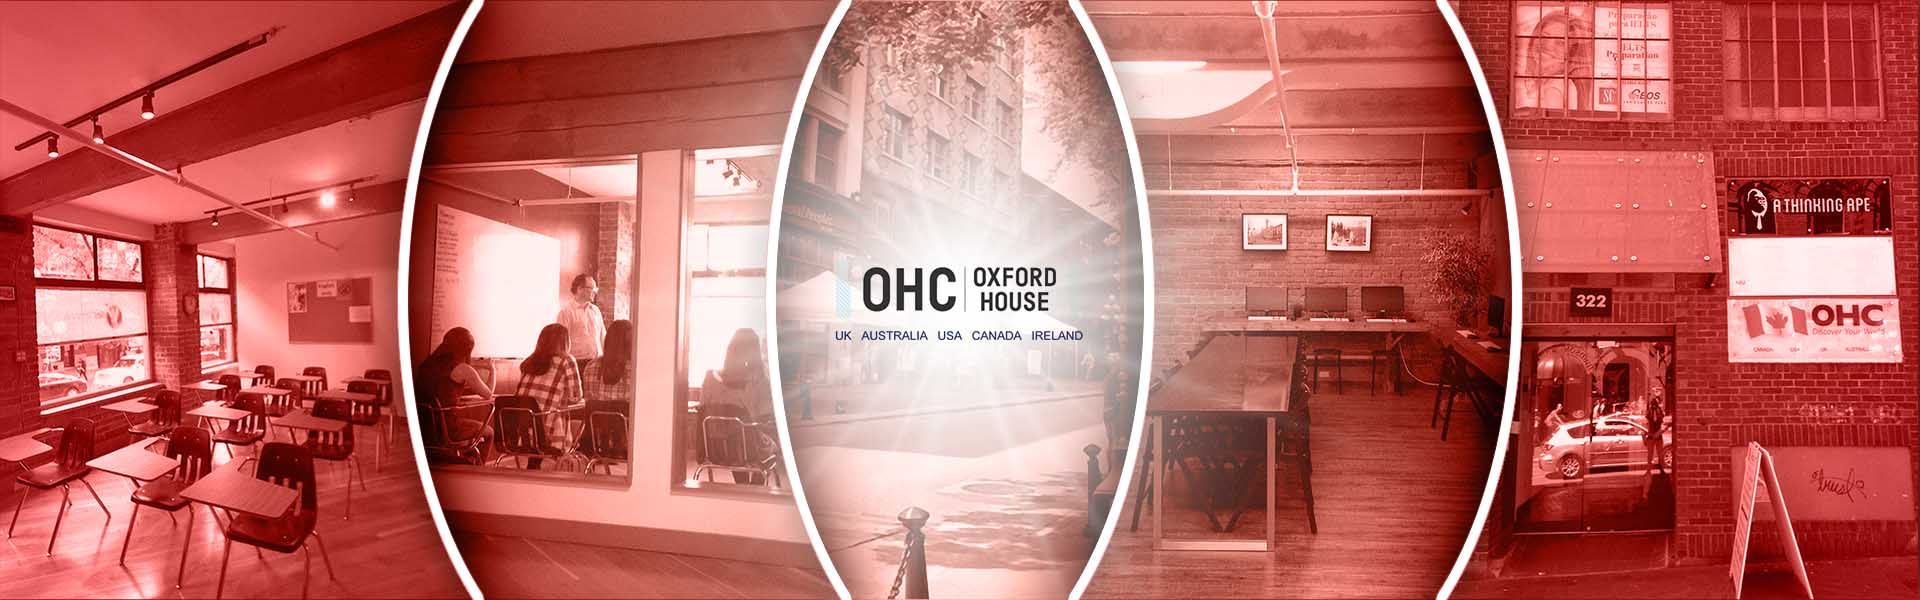 Oxford House College – OHC Vancouver Dil Okulu